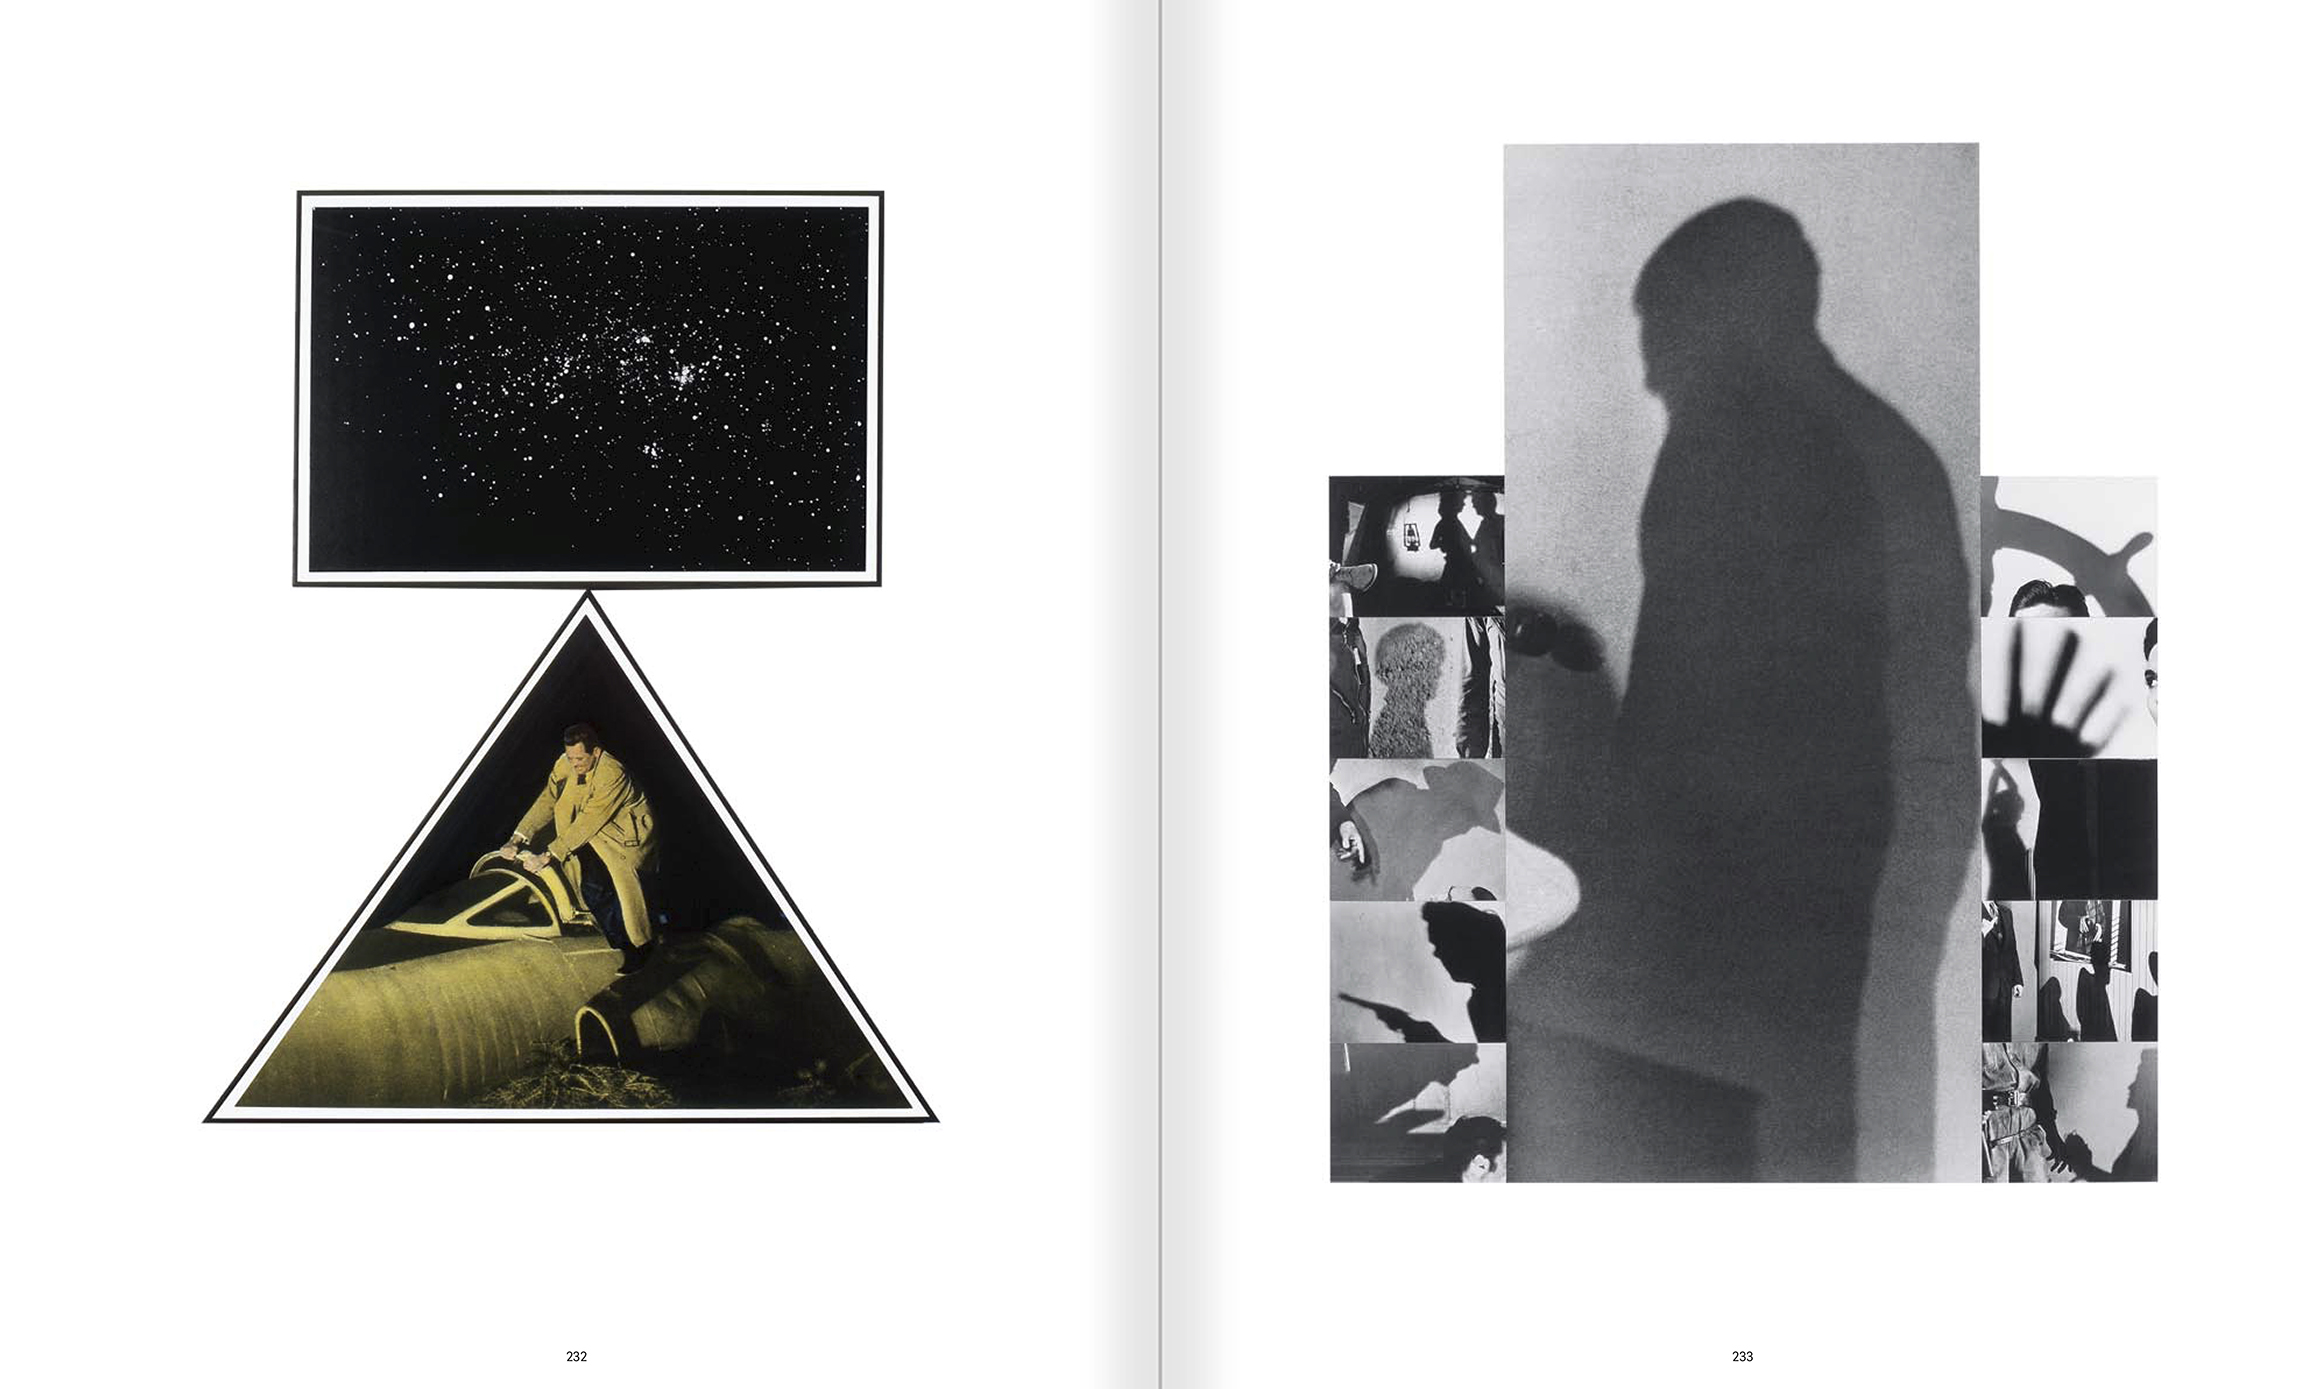 Selection from the catalogue 'John Baldessari. Pure Beauty', pages 232 and 233